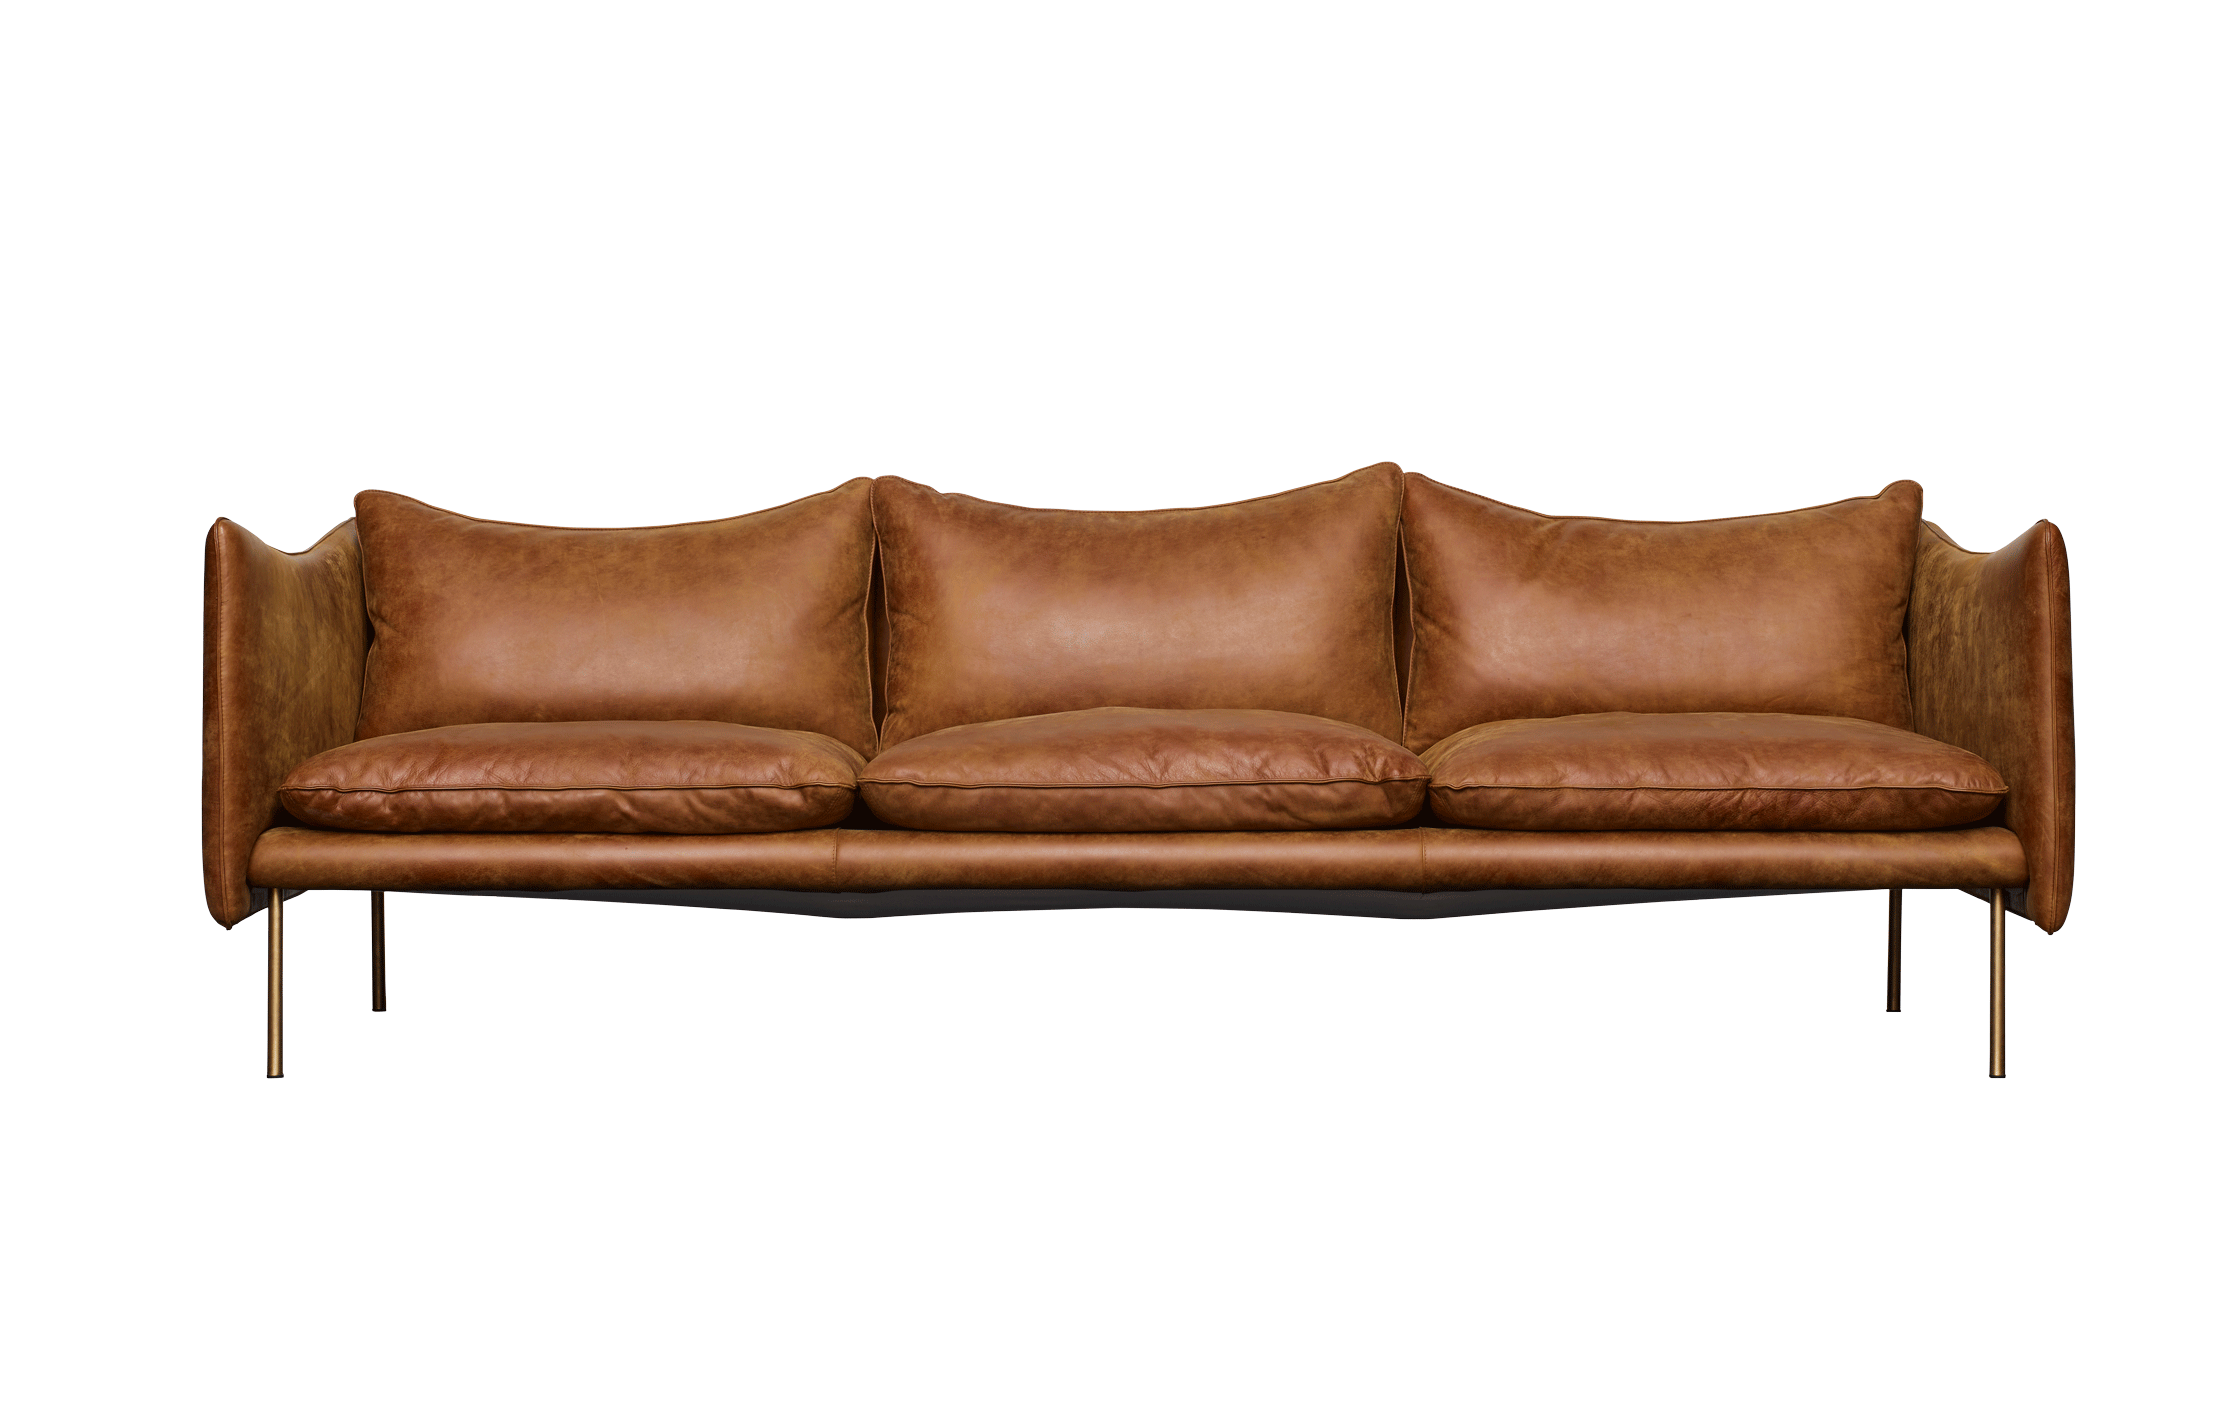 Lit Brooklyn Alinea Canape Sofa Definition Taraba Home Review